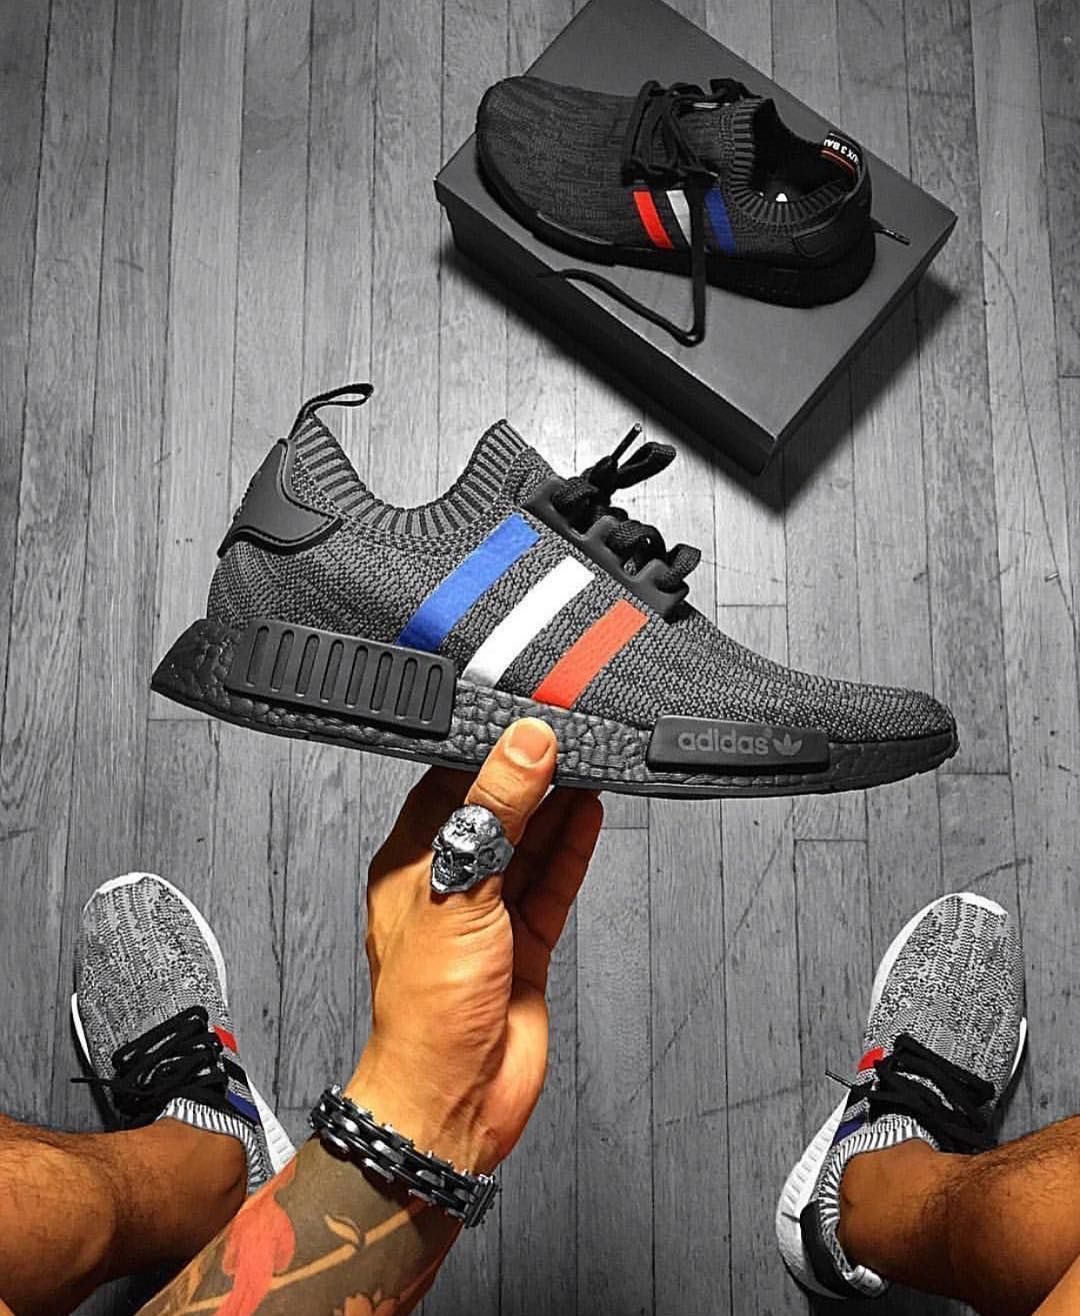 af58bd48c adidas NMD R1 Primeknit Tri-Color Pack with custom colored boost soles (  those M-like colours)